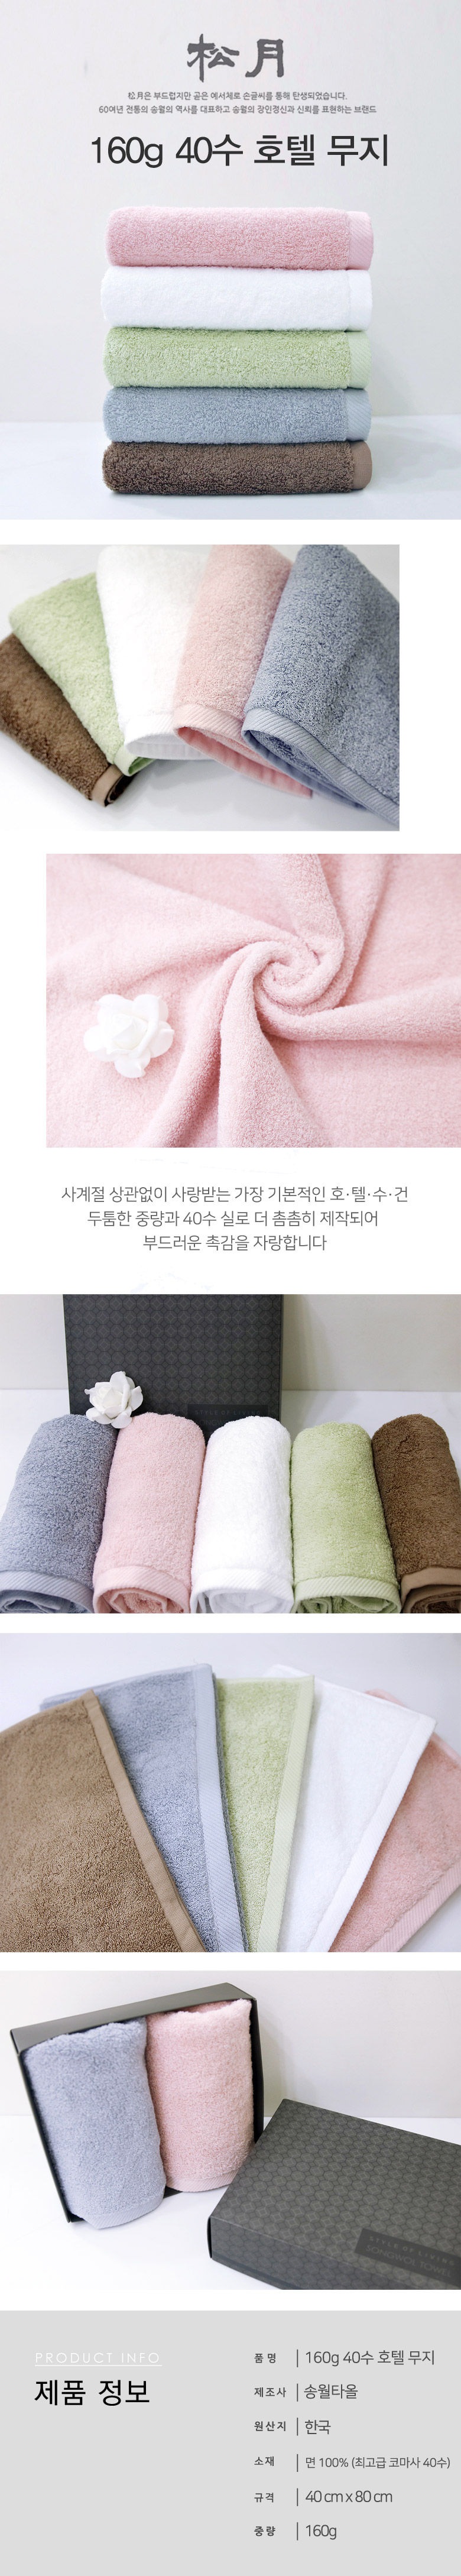 [ songwol ] Songwol Handtuch 170g 40 Plain für Hotels (40*80cm)